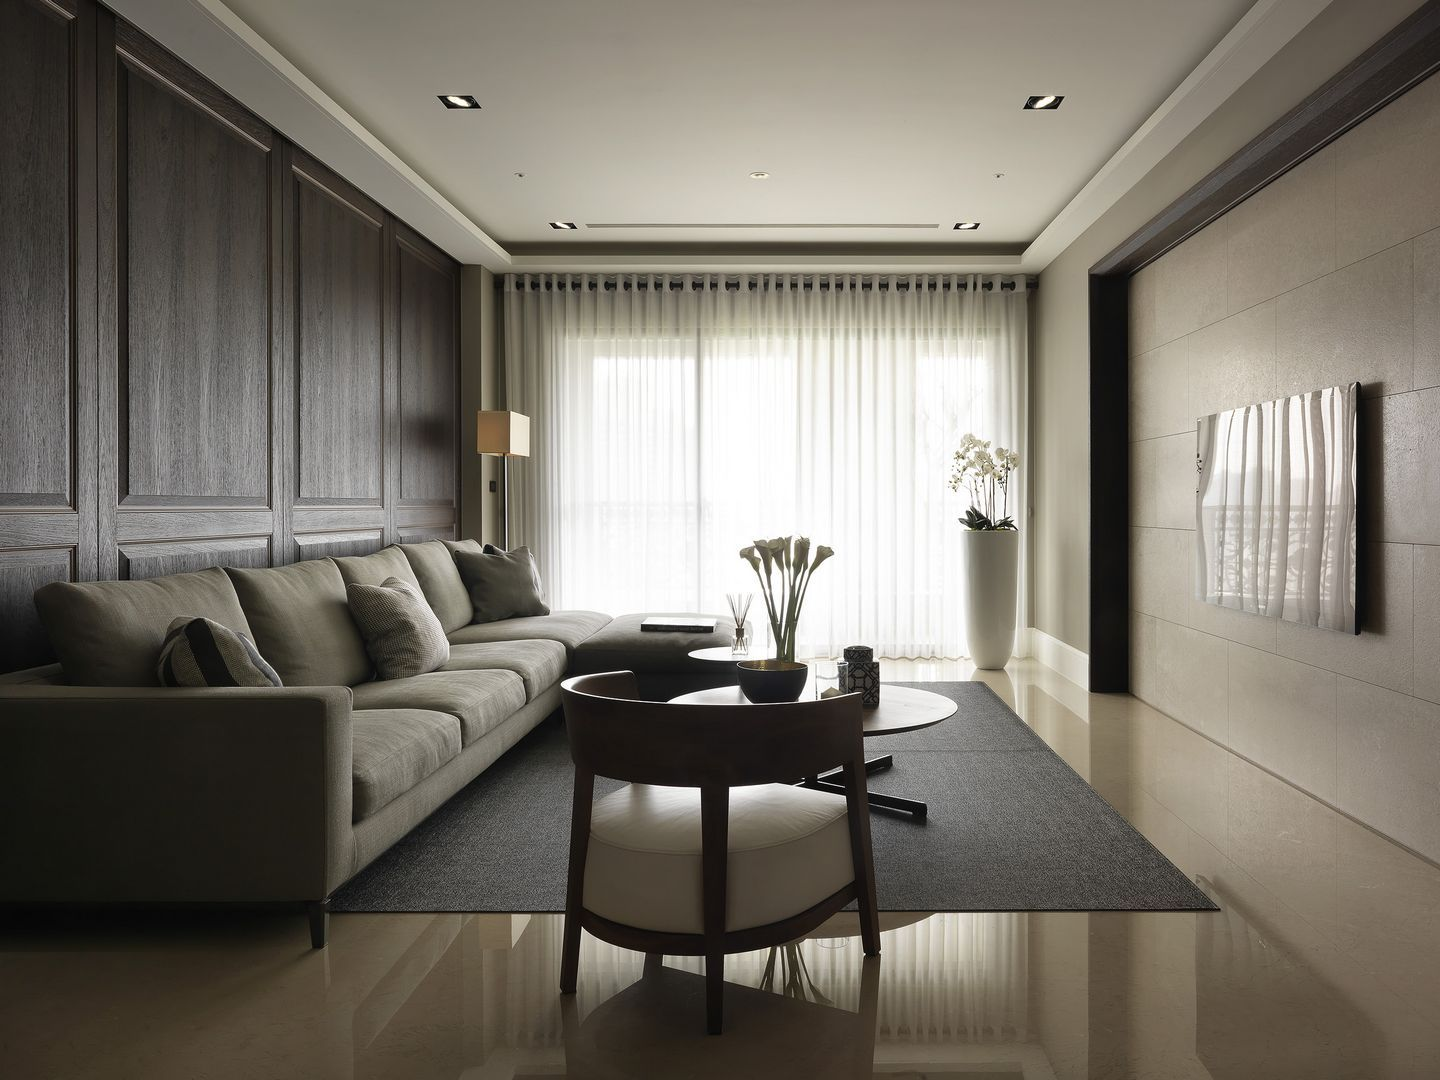 RESIDENTIAL-珥本設計 | Living Space | Pinterest